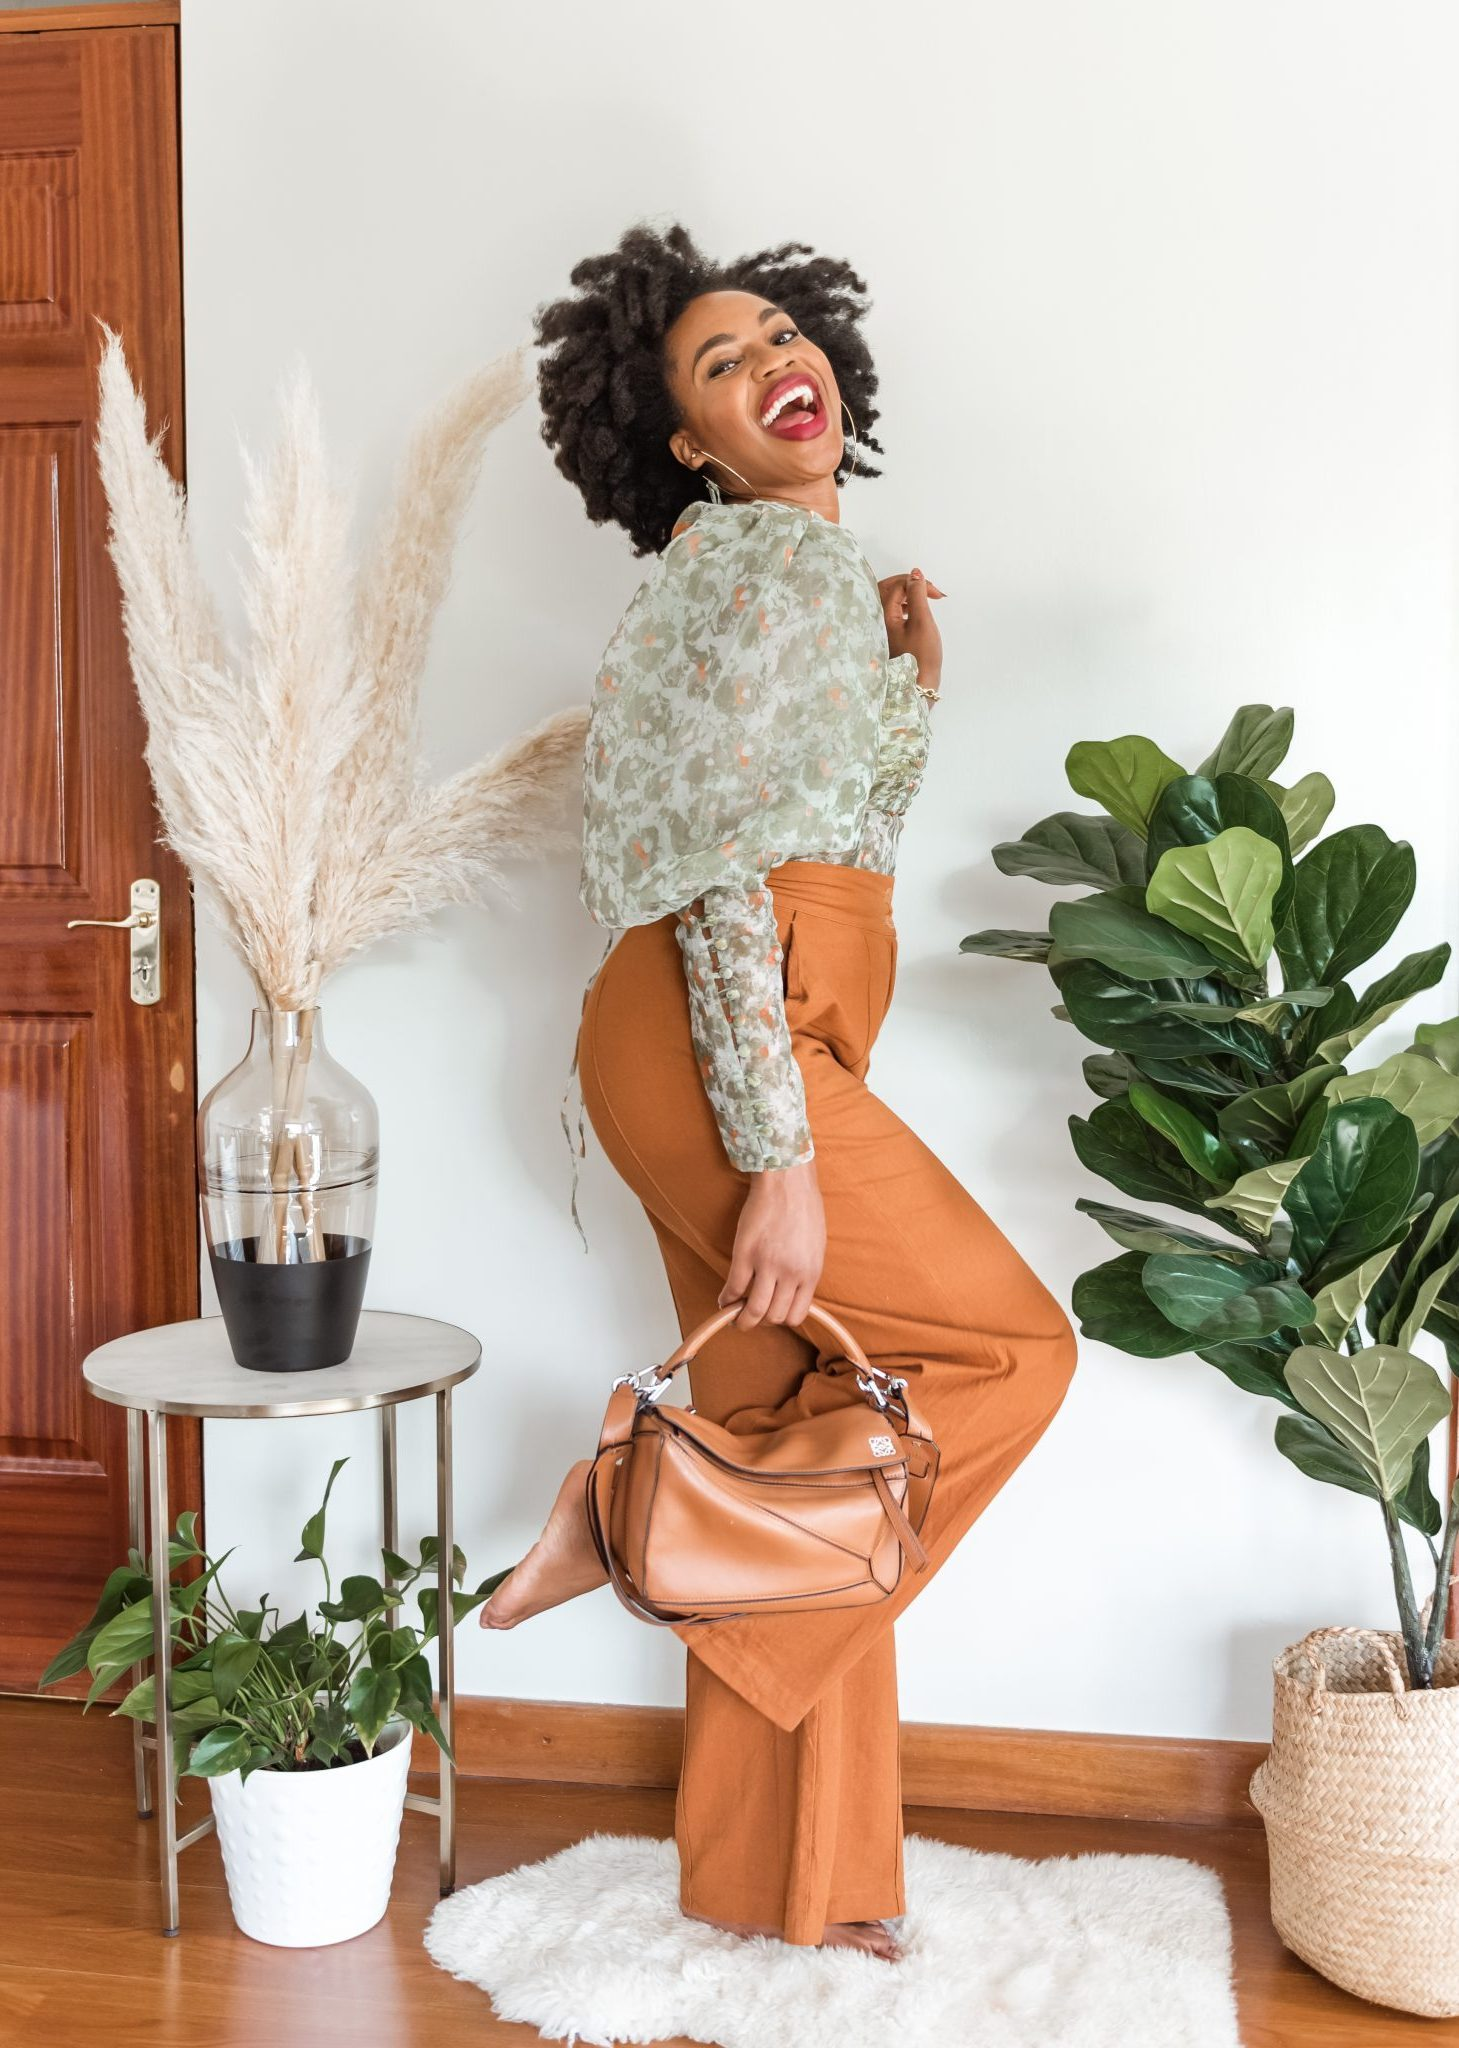 IJeoma. kola.posing and laughing - Inspirational Instagram accounts